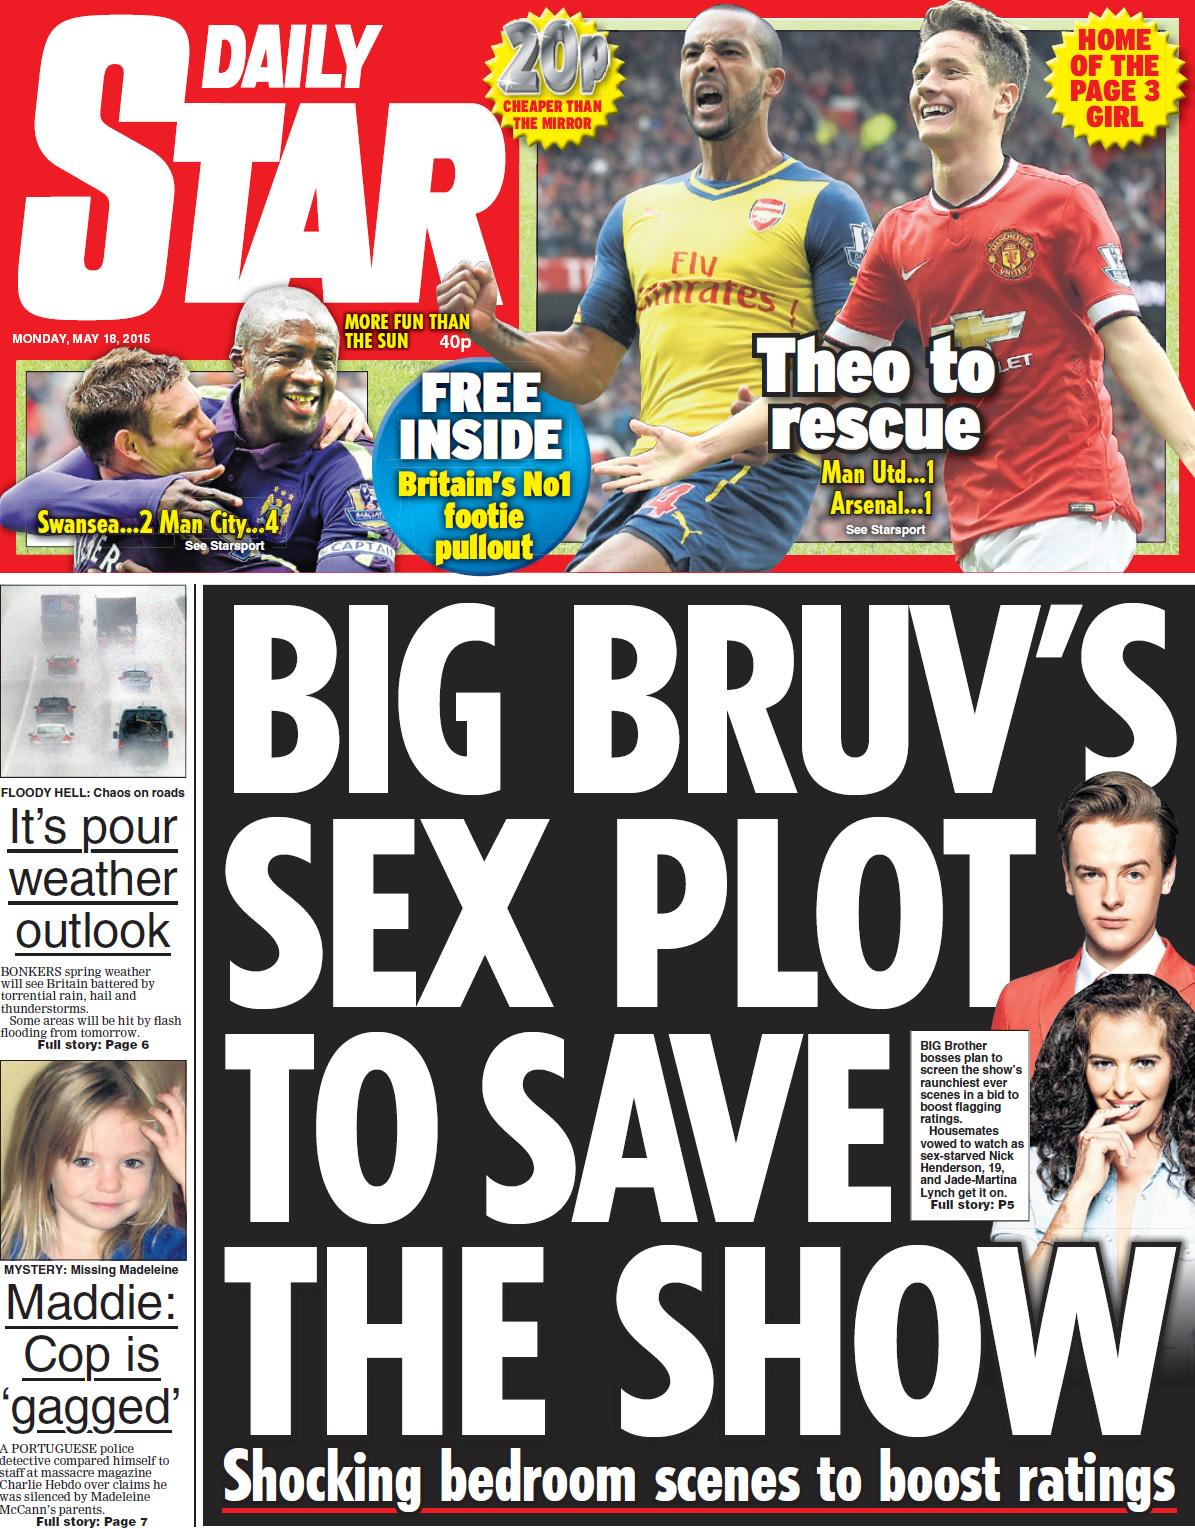 Maddie cop slams McCanns over 'gag': Ex-police boss to fight court ruling - Daily Star 18.5.15 CFPEJhQW0AIQzDb